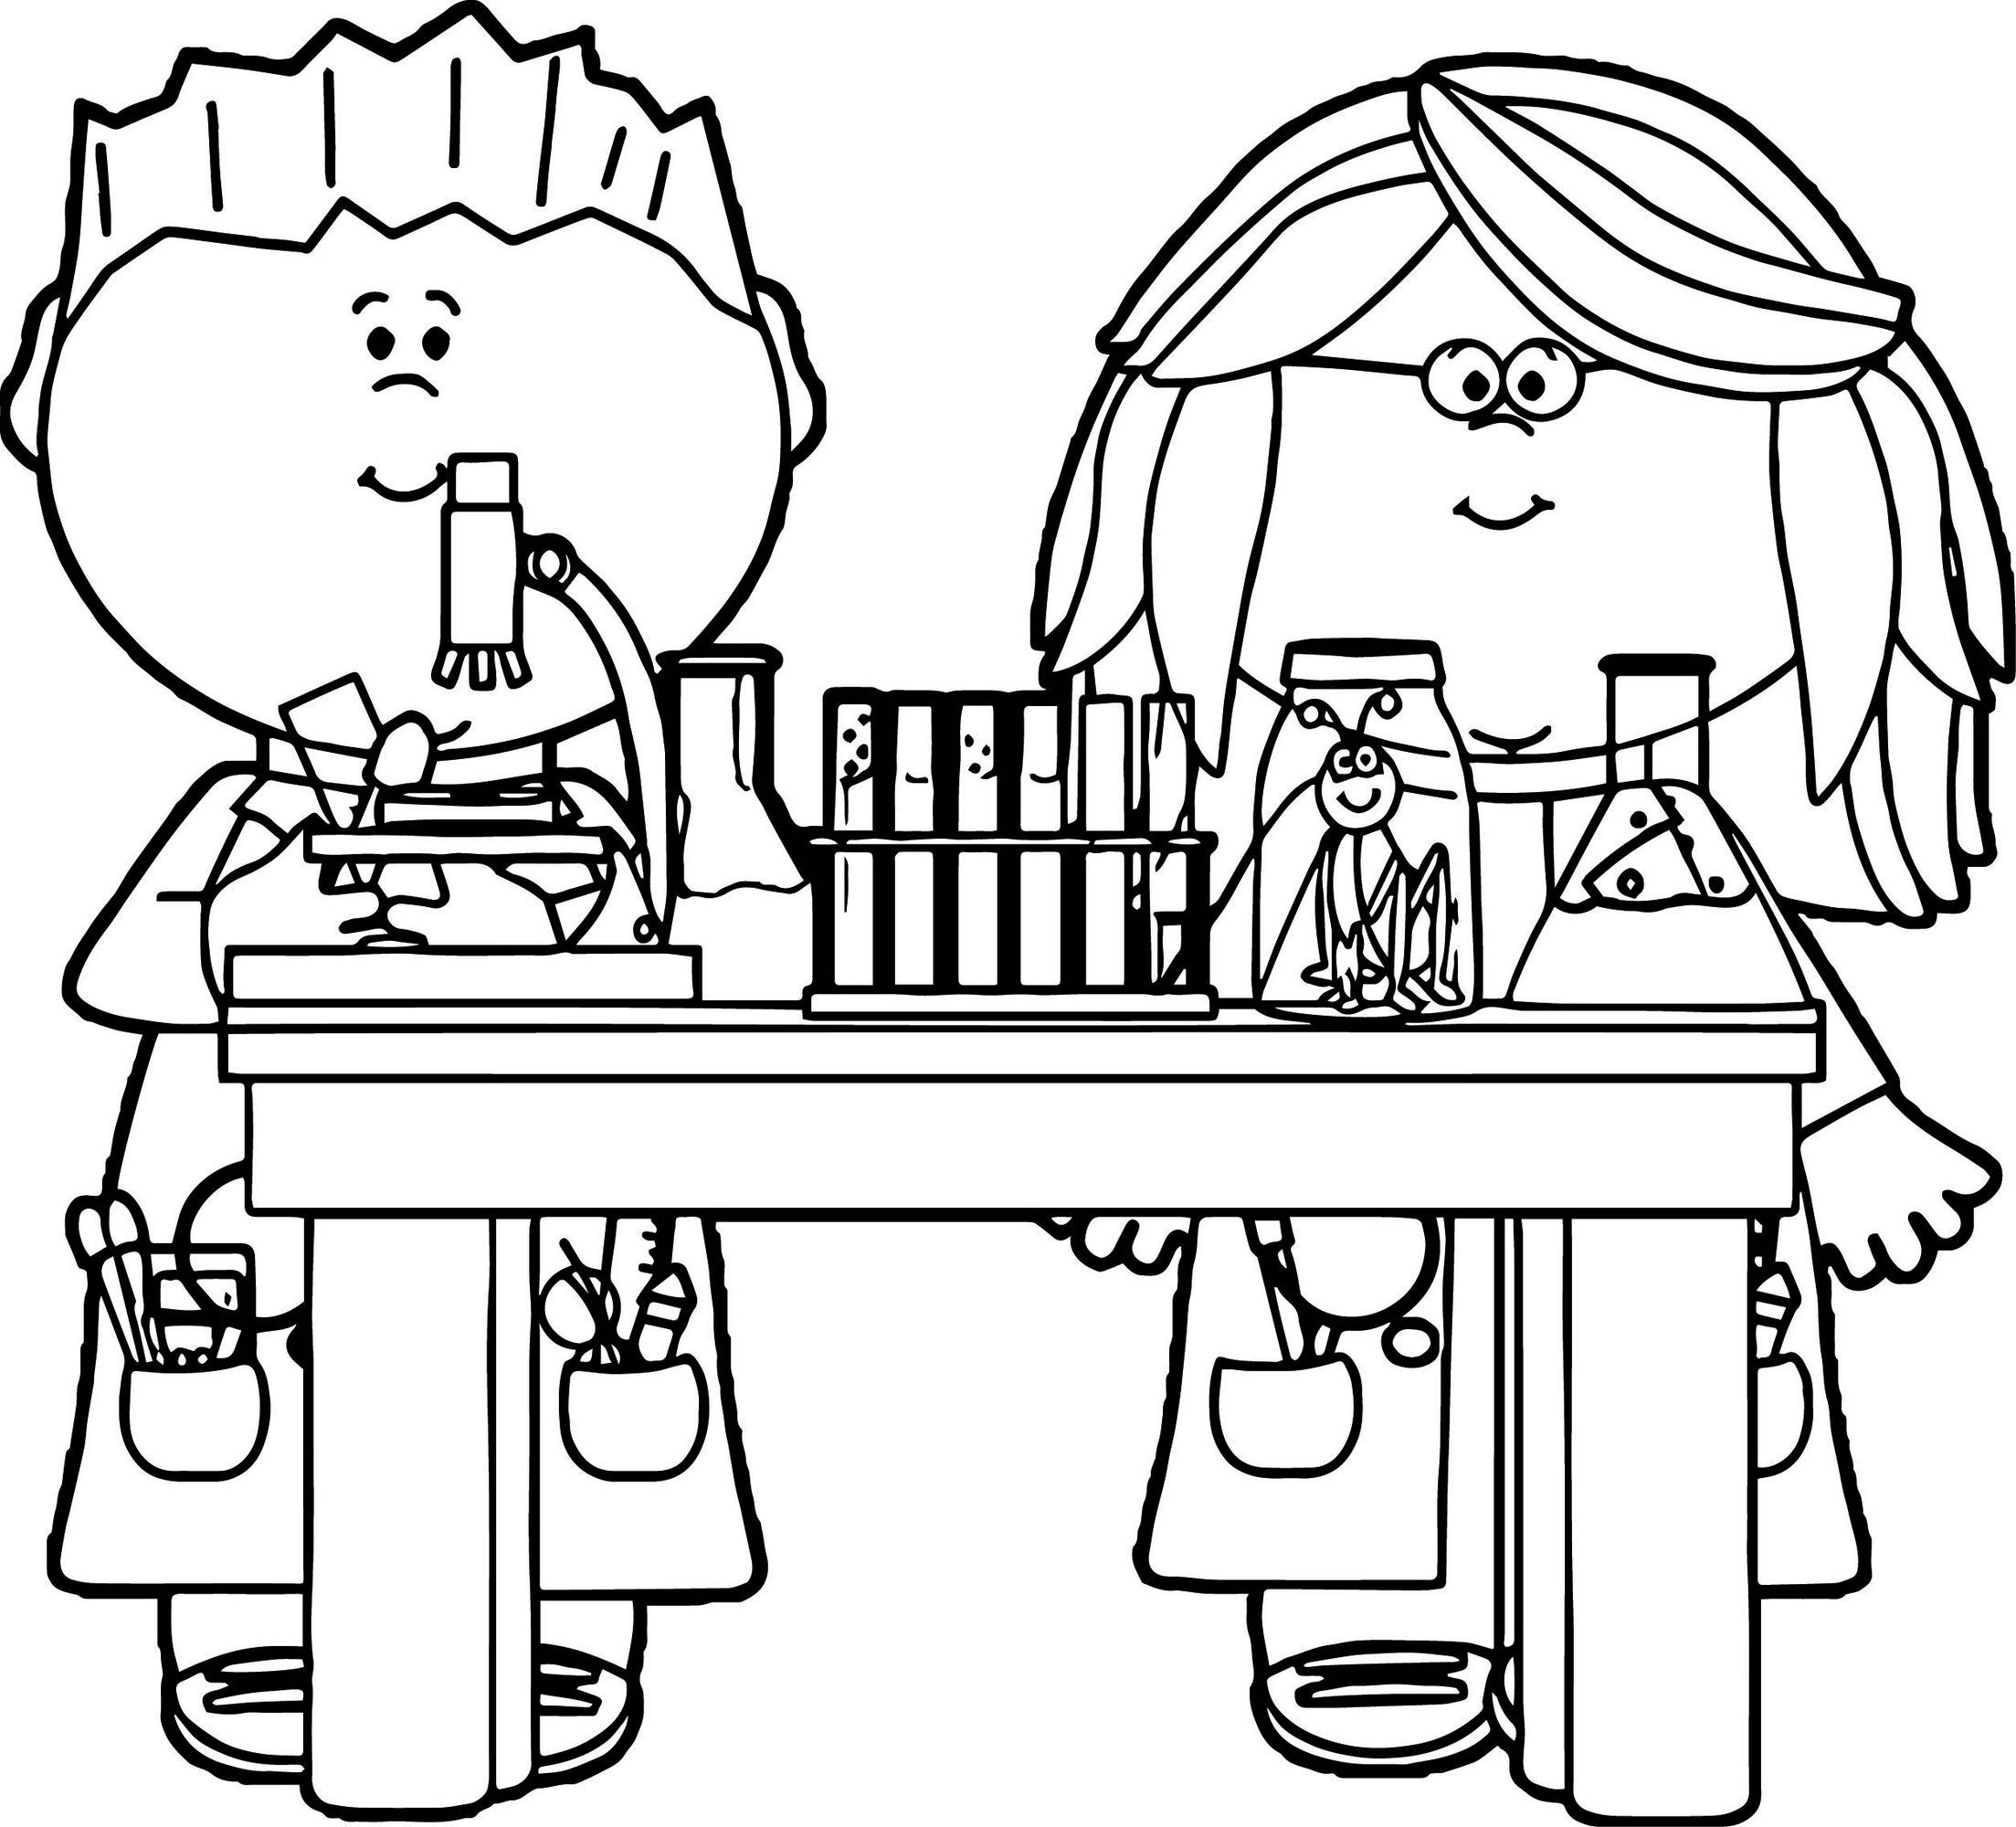 Science Coloring Pages To Help Kids Become More Interested In